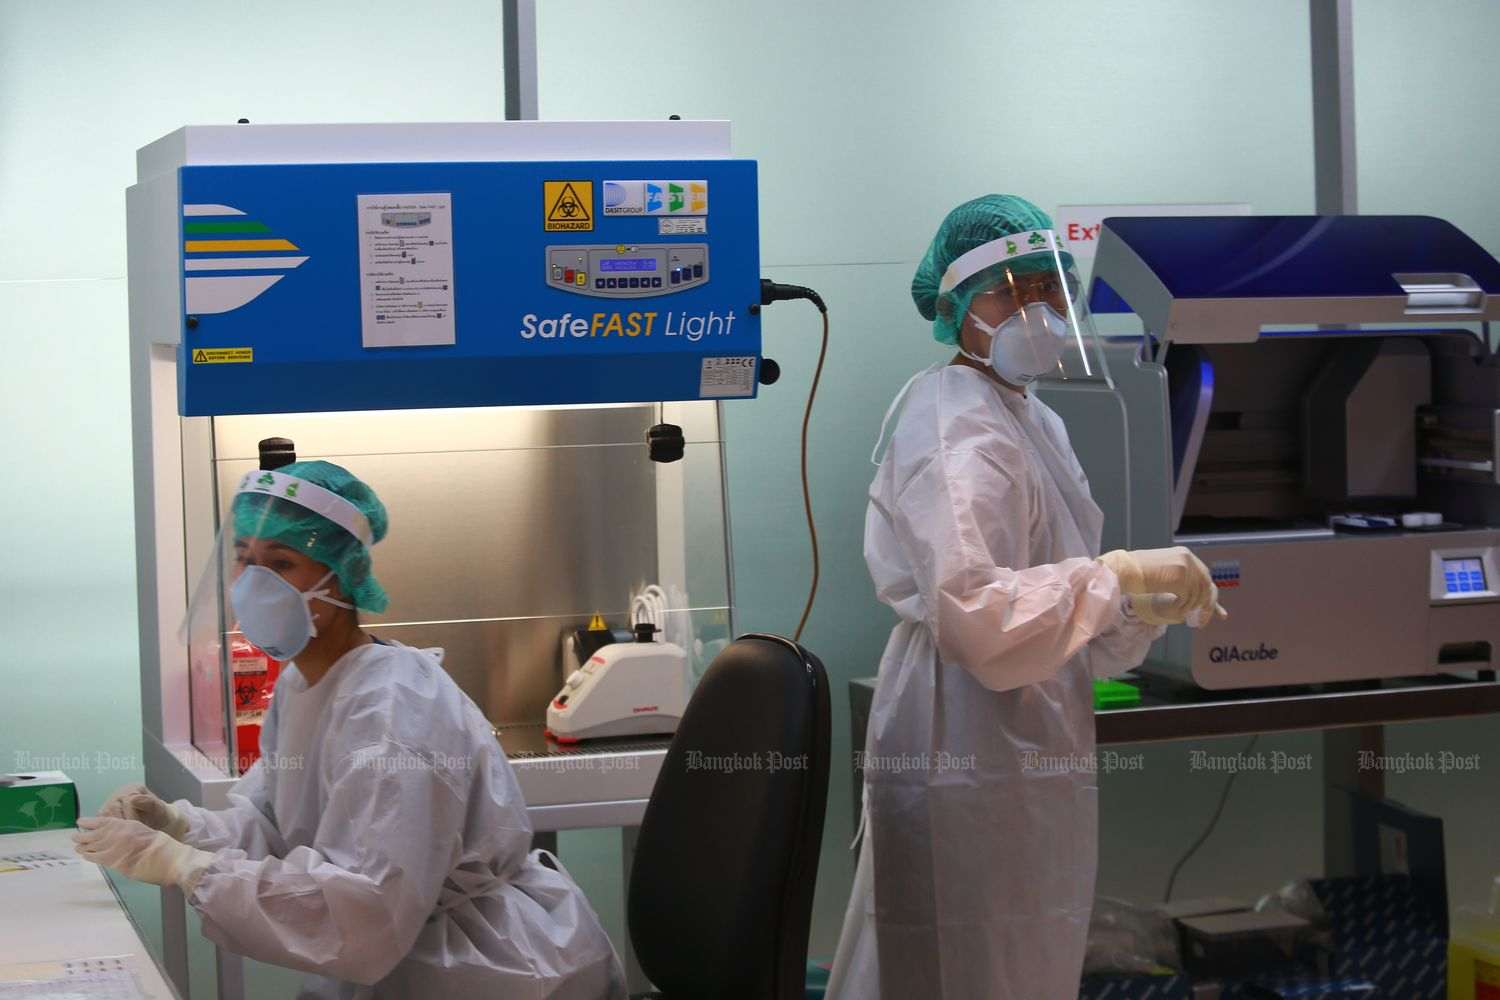 A new Covid-19 laboratory for polymerise chain reaction (PCR) or antibody tests at Suvarnabhumi airport on Friday. Airports of Thailand has stepped up preventive measures at the international gateway as the country reopens for limited international arrivals. (Photos by Somchai Poomlard)